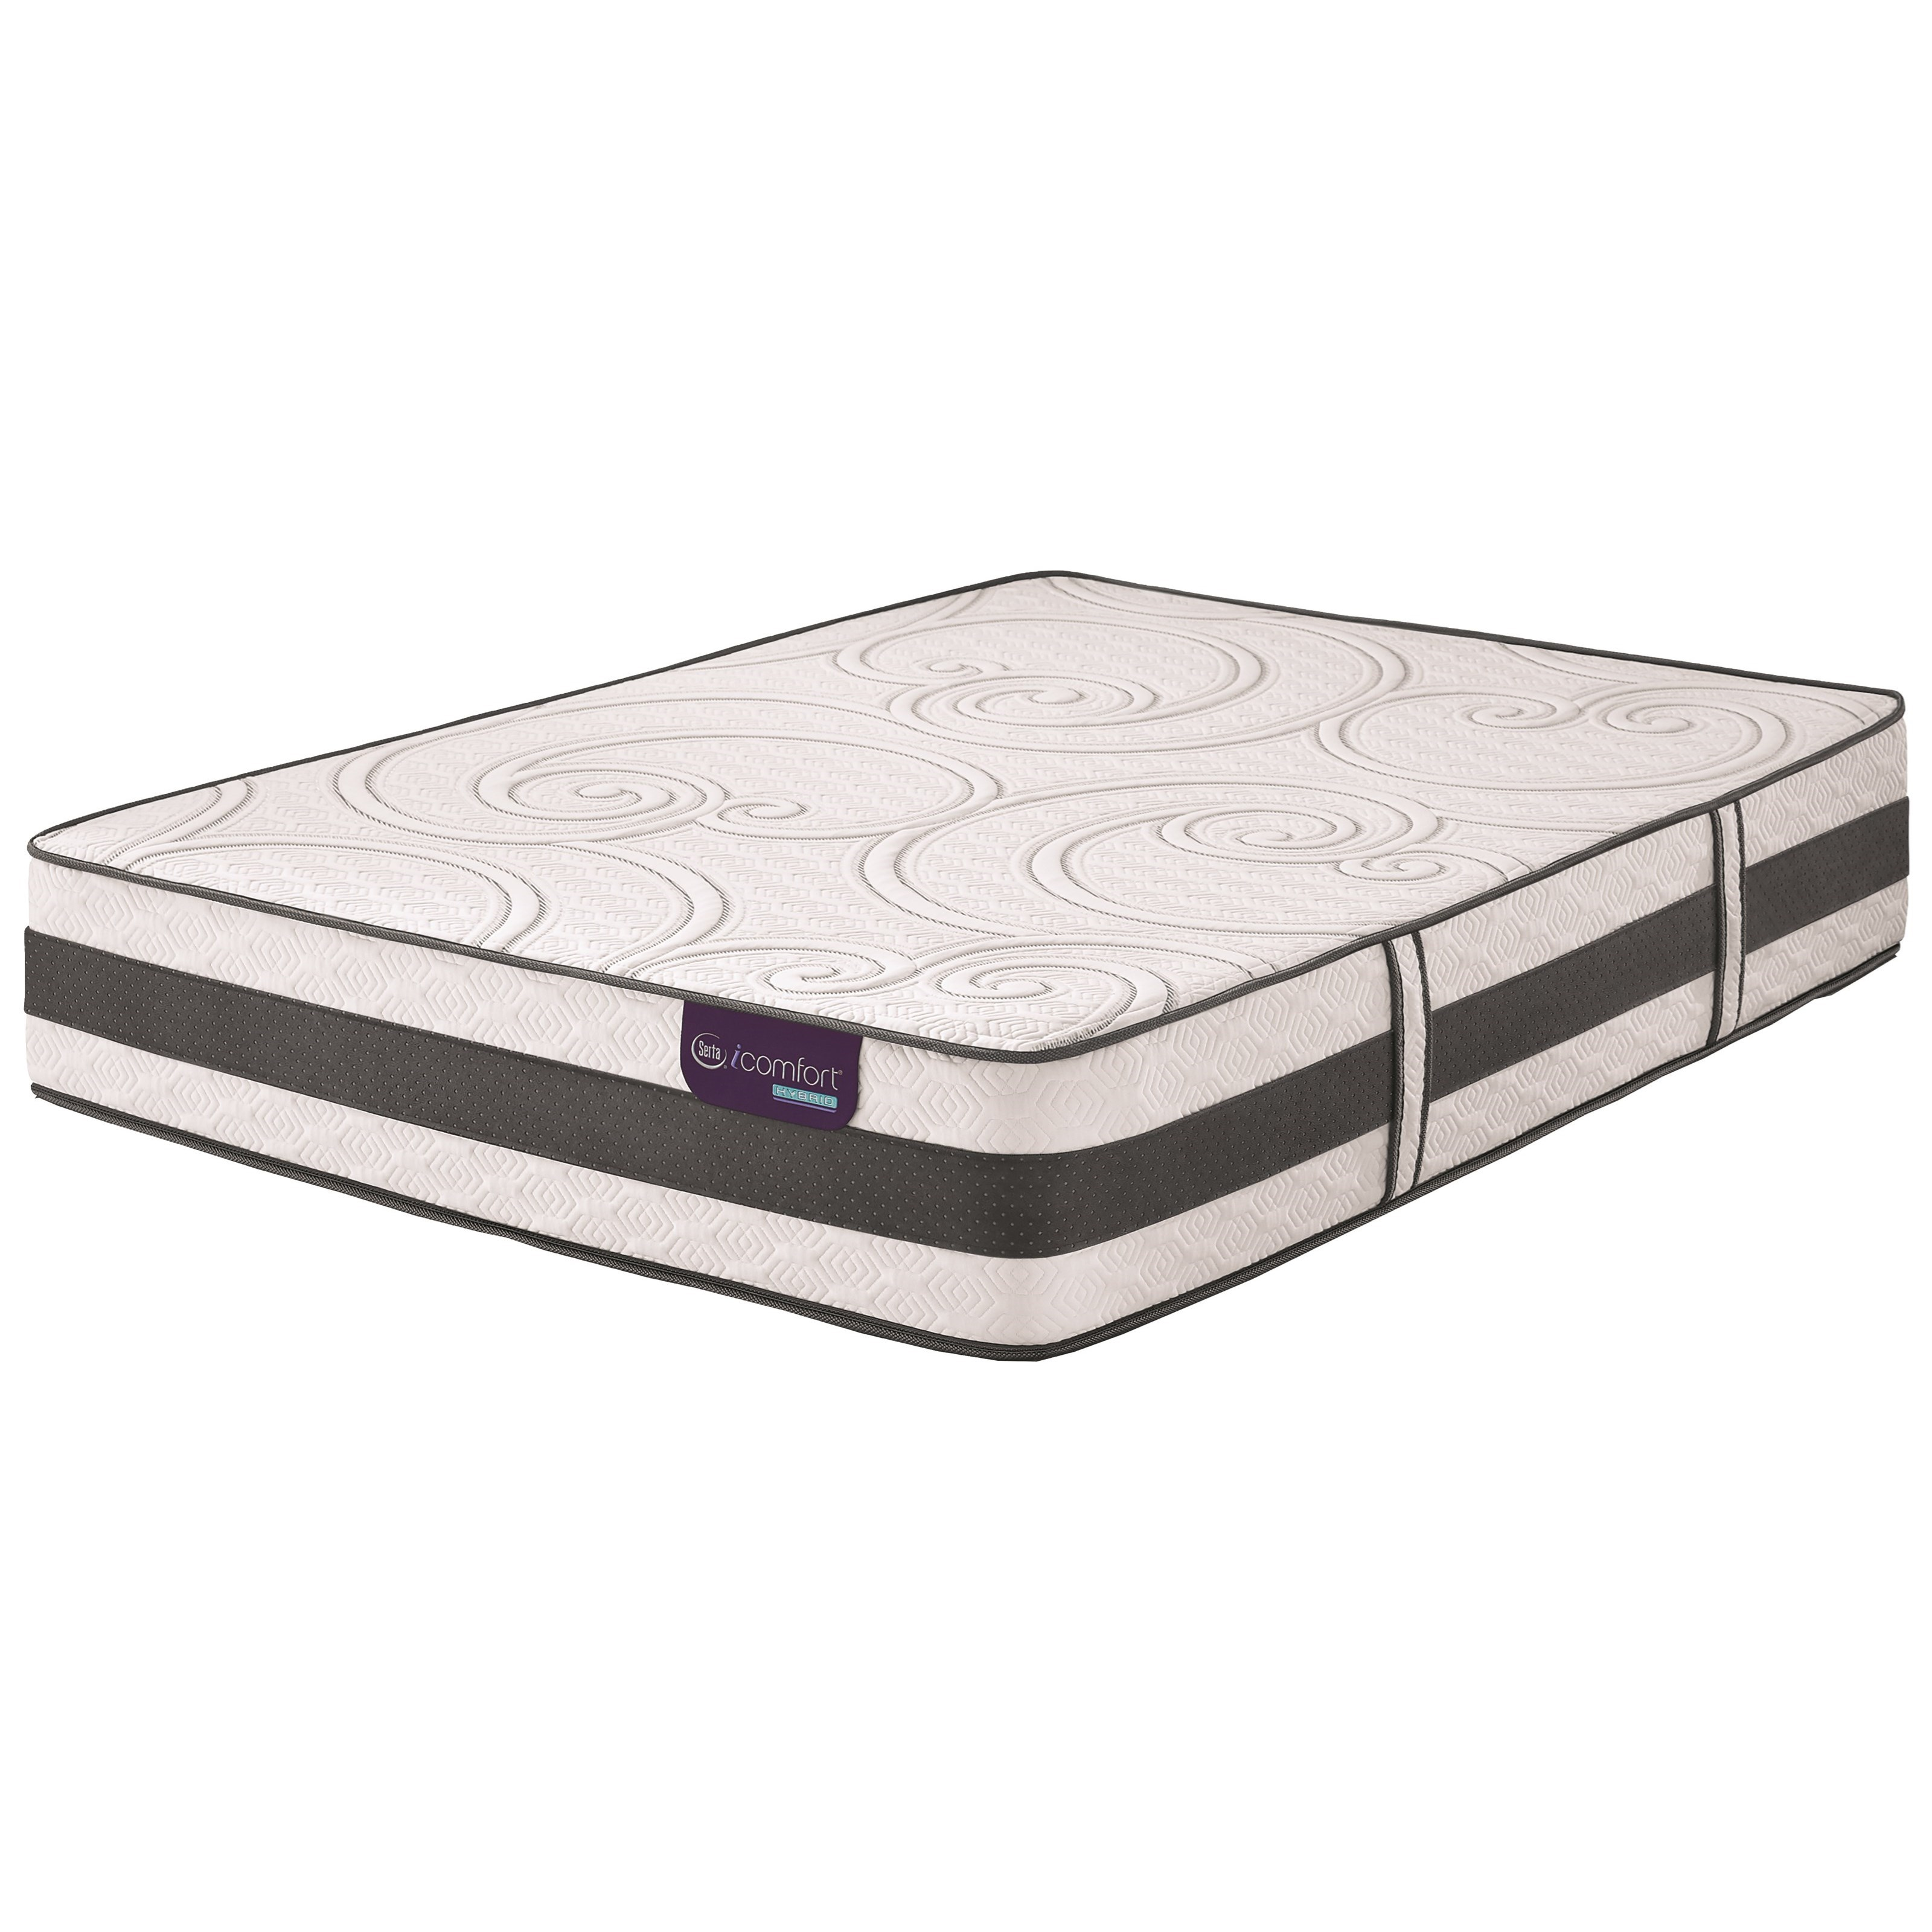 reviews awesome serta related elegant for iseries bedroom ideas mattress design of mattresses amp post new beds domoom modern